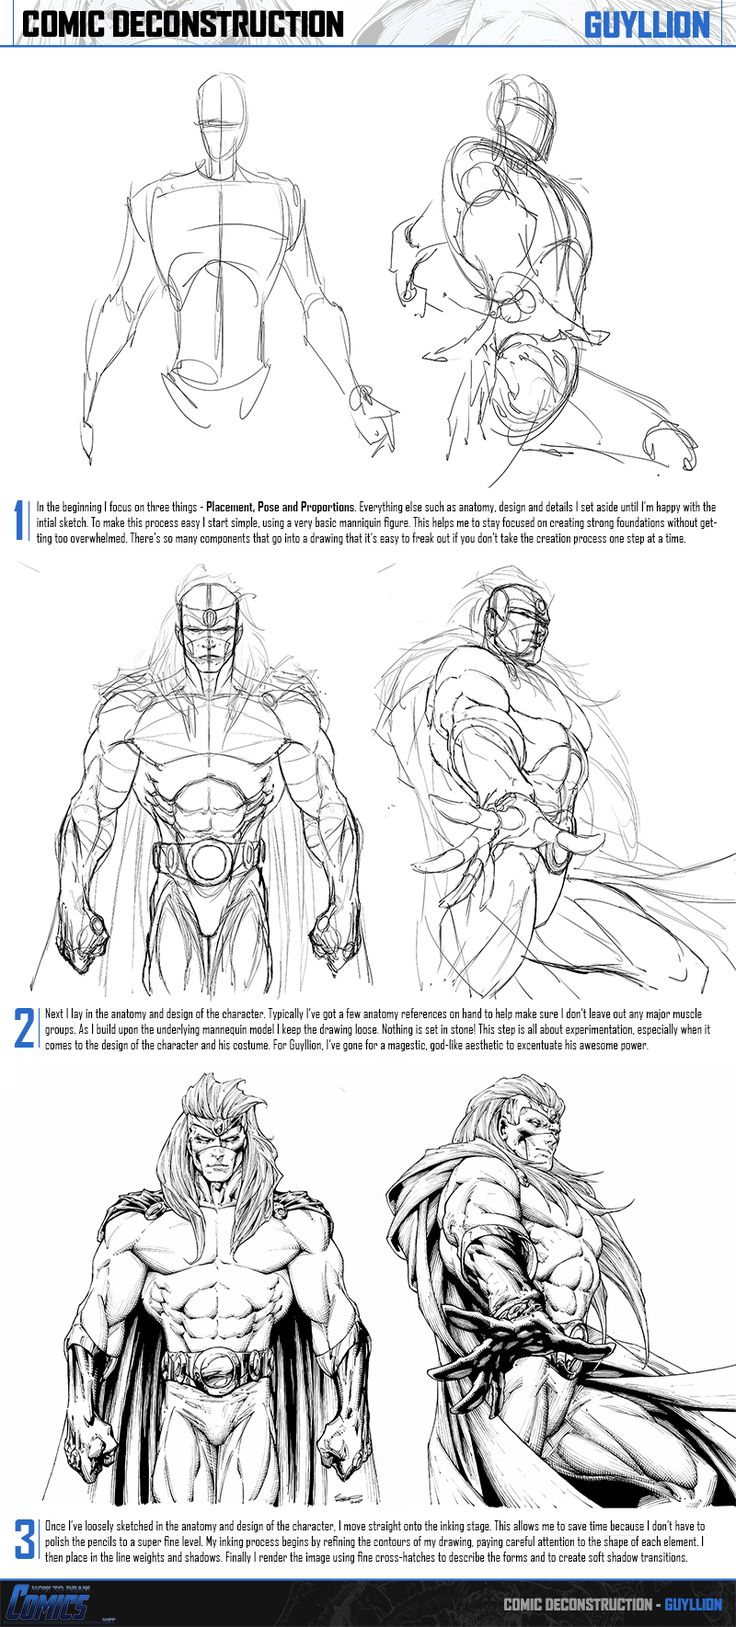 Comic Construction Breakdown - Guyllion by ClaytonBarton